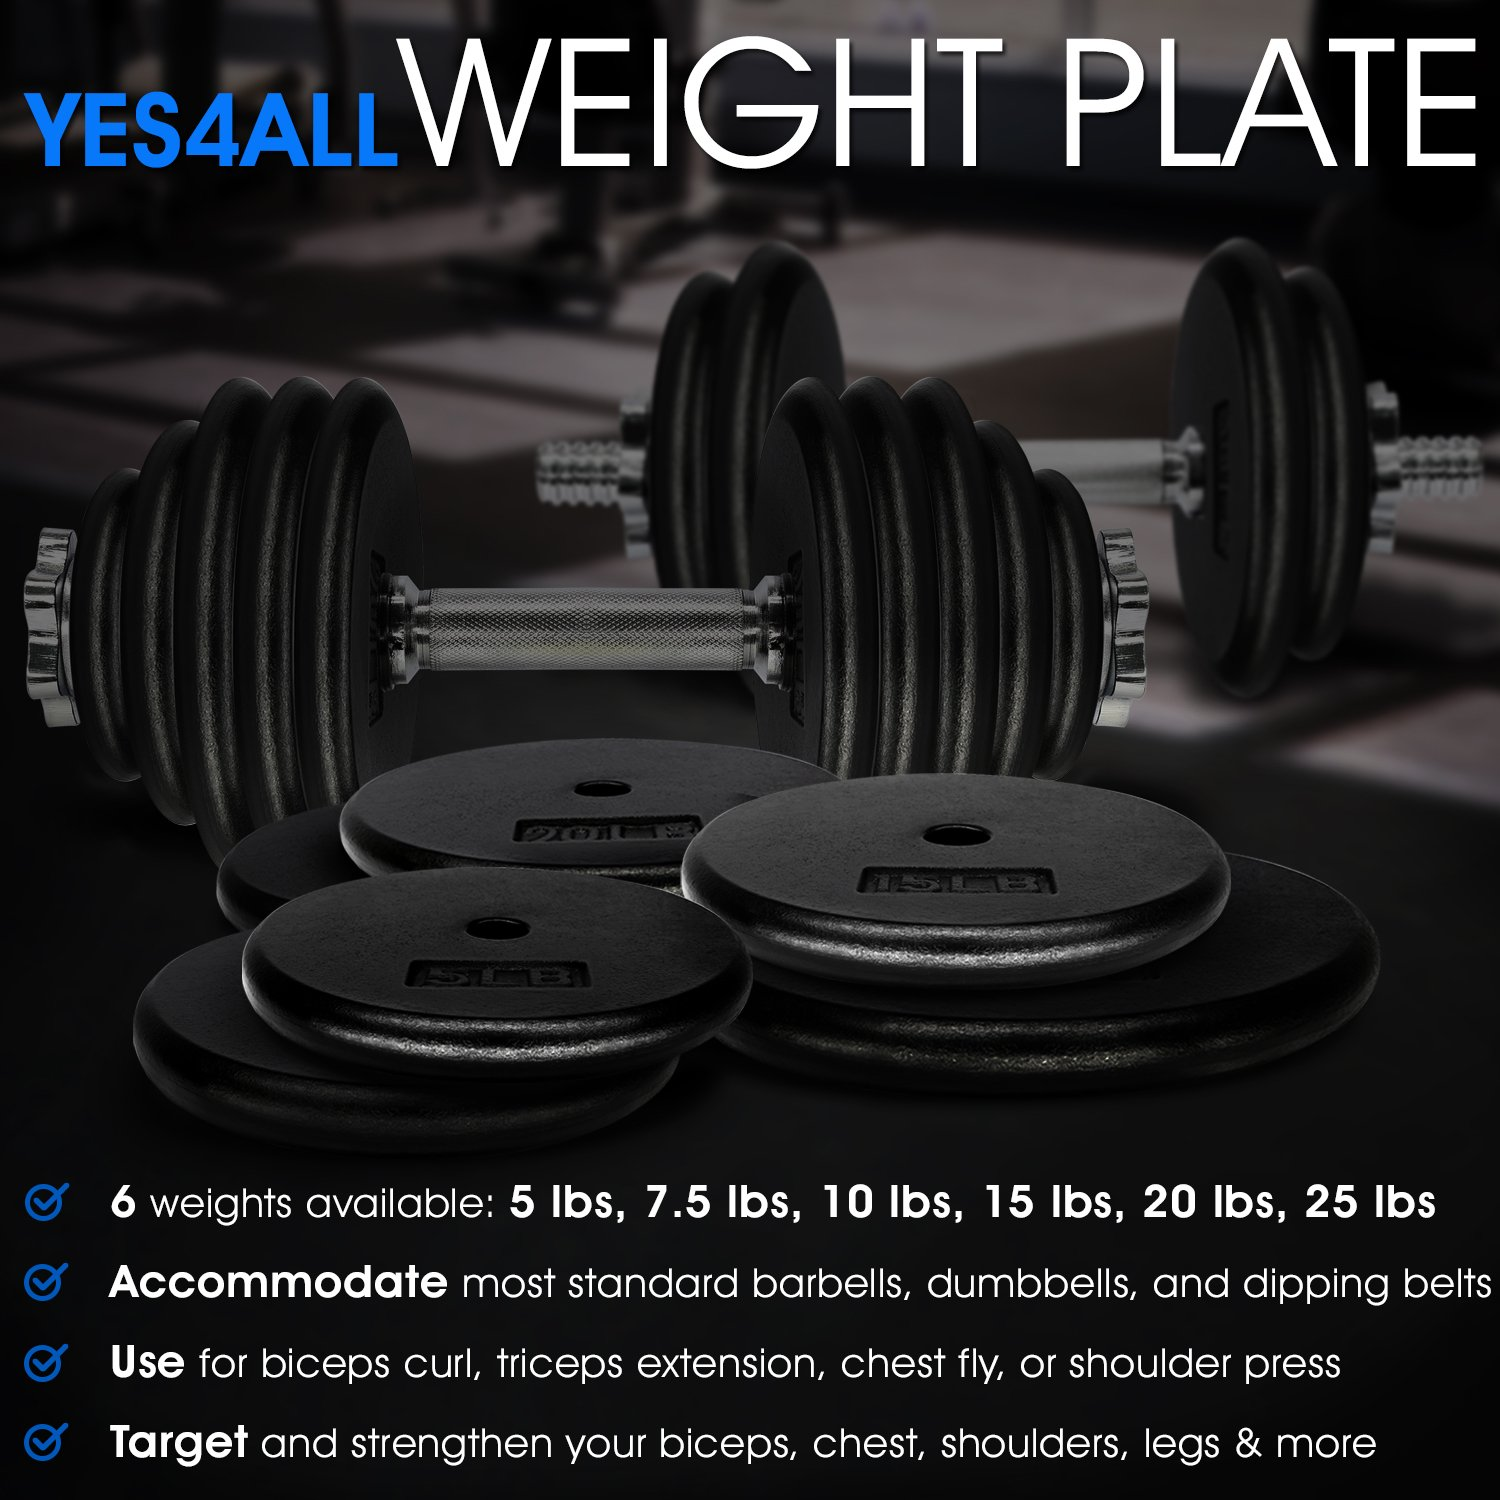 Amazon.com : Yes4All 1-inch Cast Iron Weight Plates for Dumbbells -  Standard Weight Disc Plates (5 lbs, Single) : Sports & Outdoors